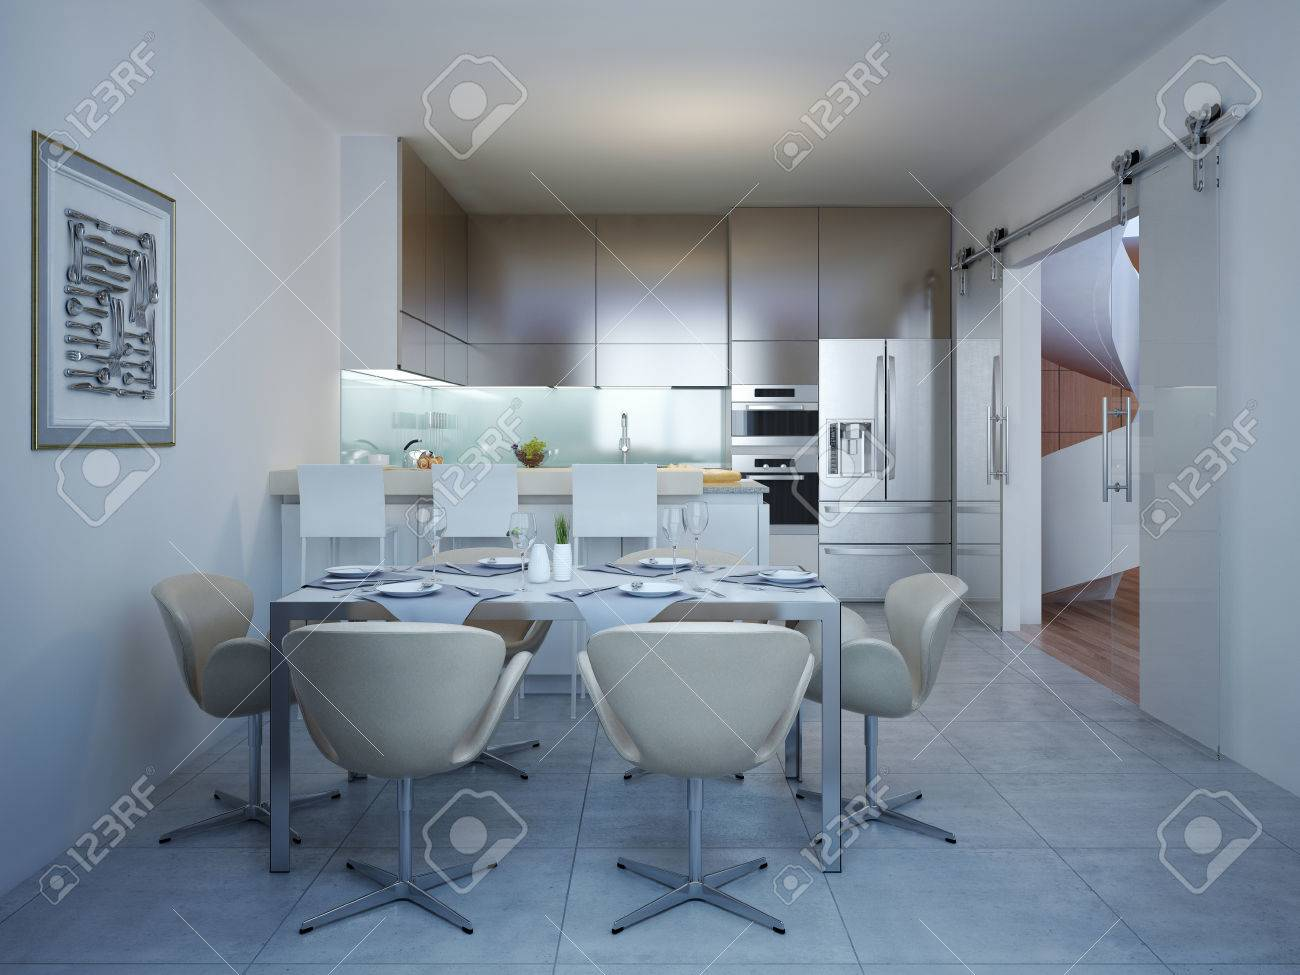 Served Dinner Table In The Kitchen Of Modern Style. Table For ...